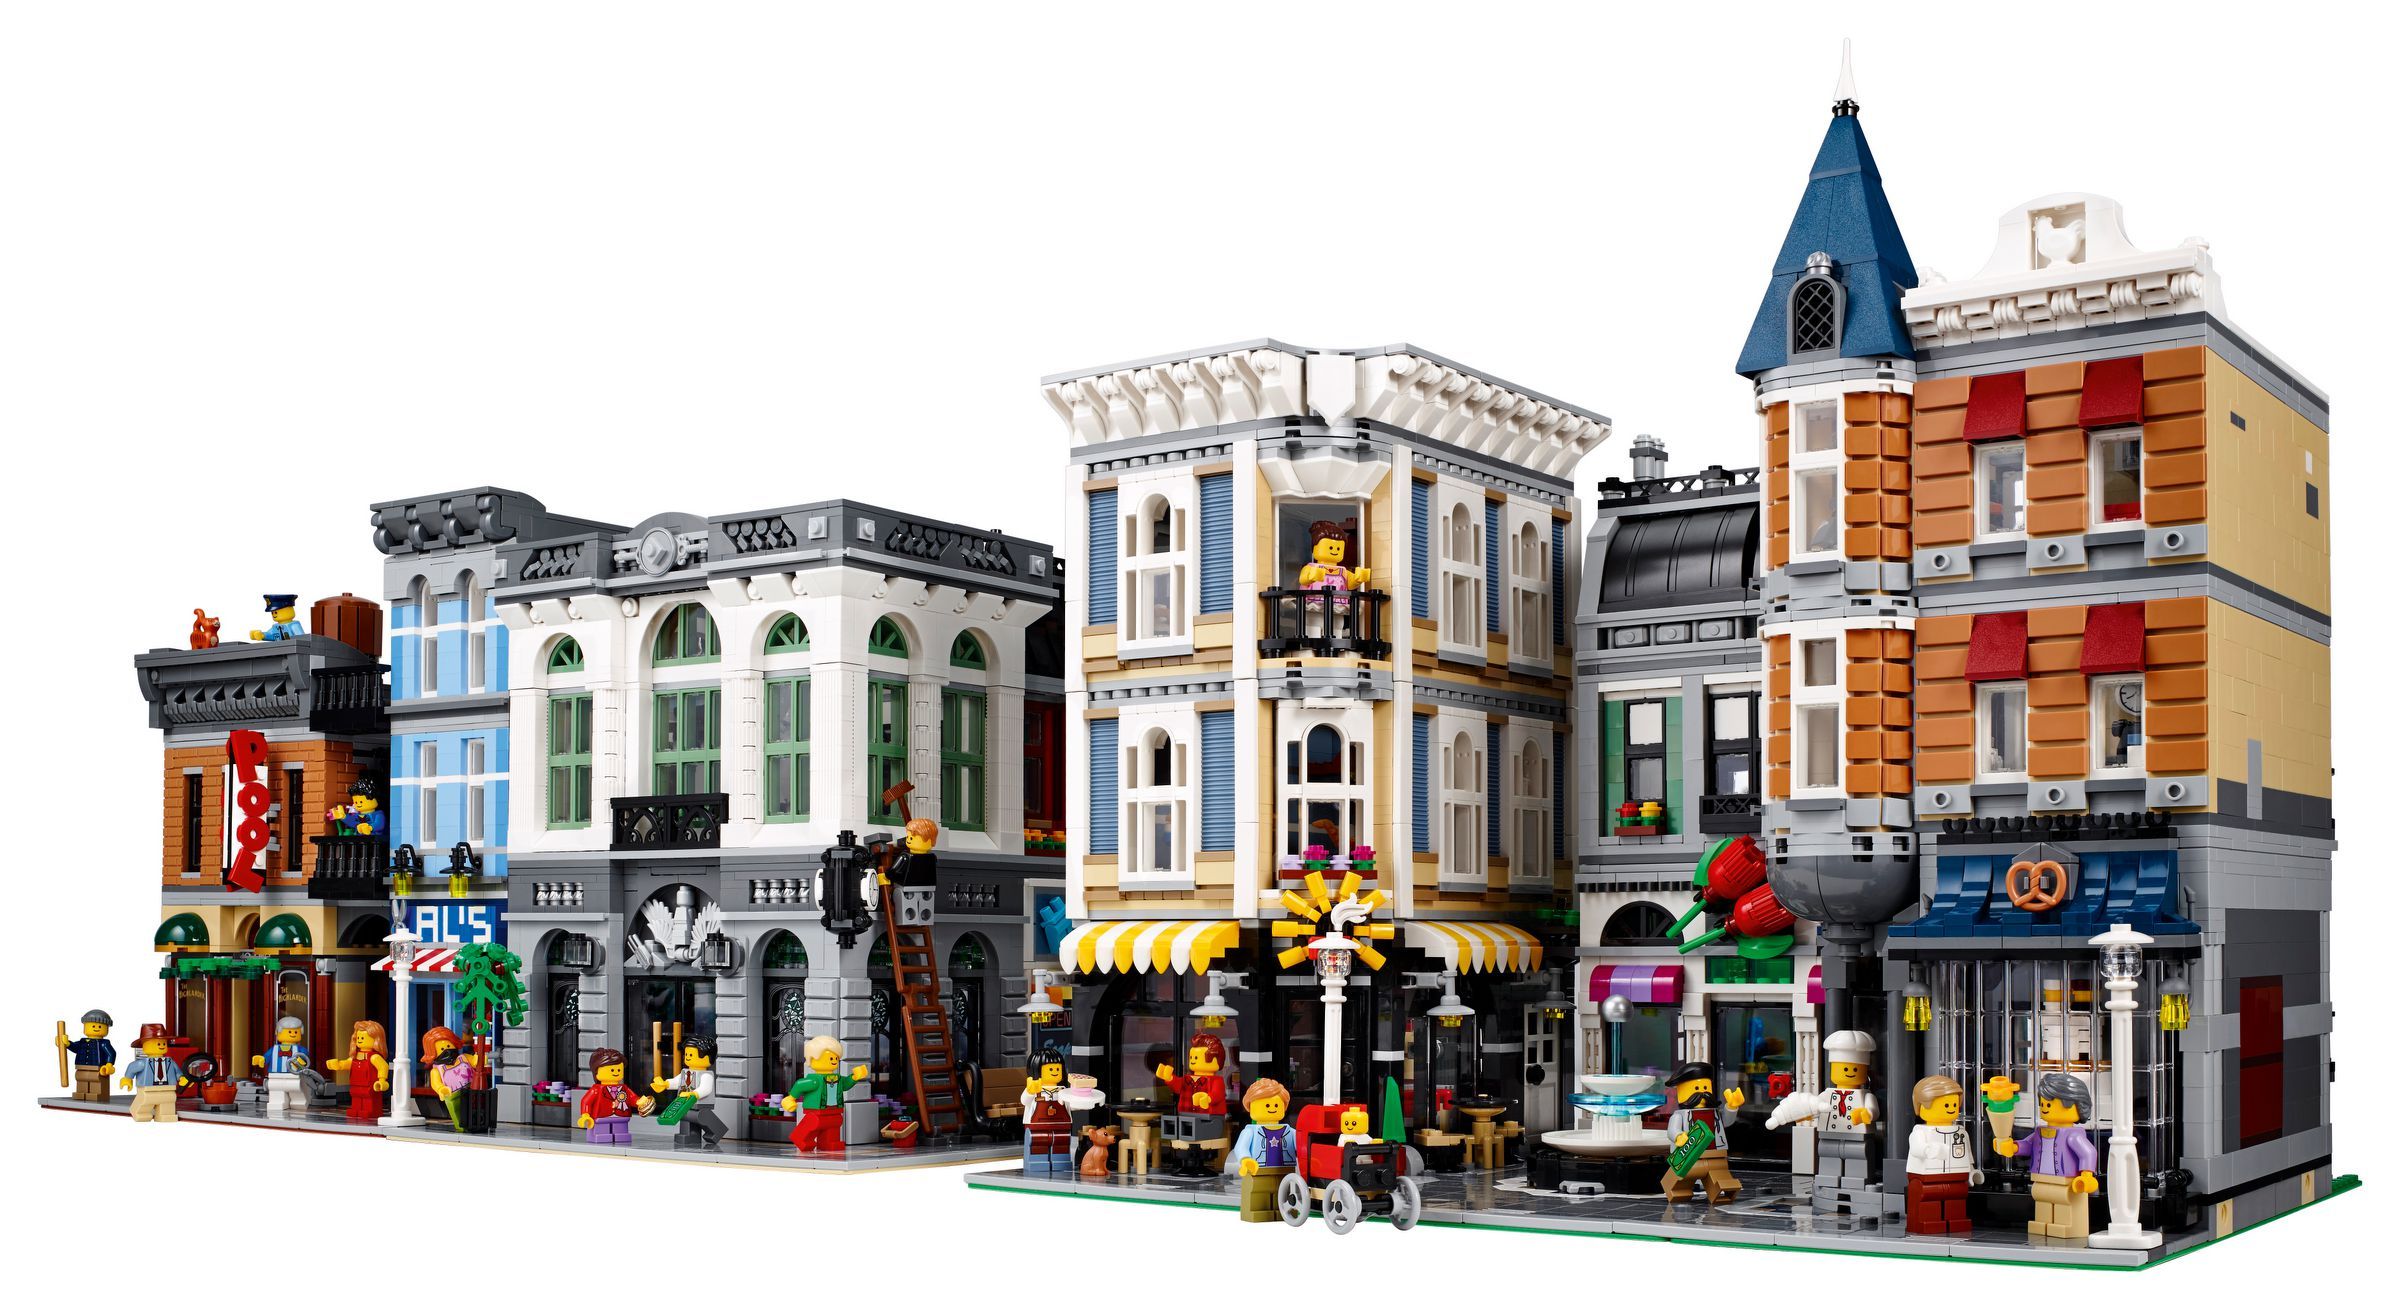 LEGO Advanced Models 10255 Assembly Square / Stadtleben LEGO_10255_alt4.jpg